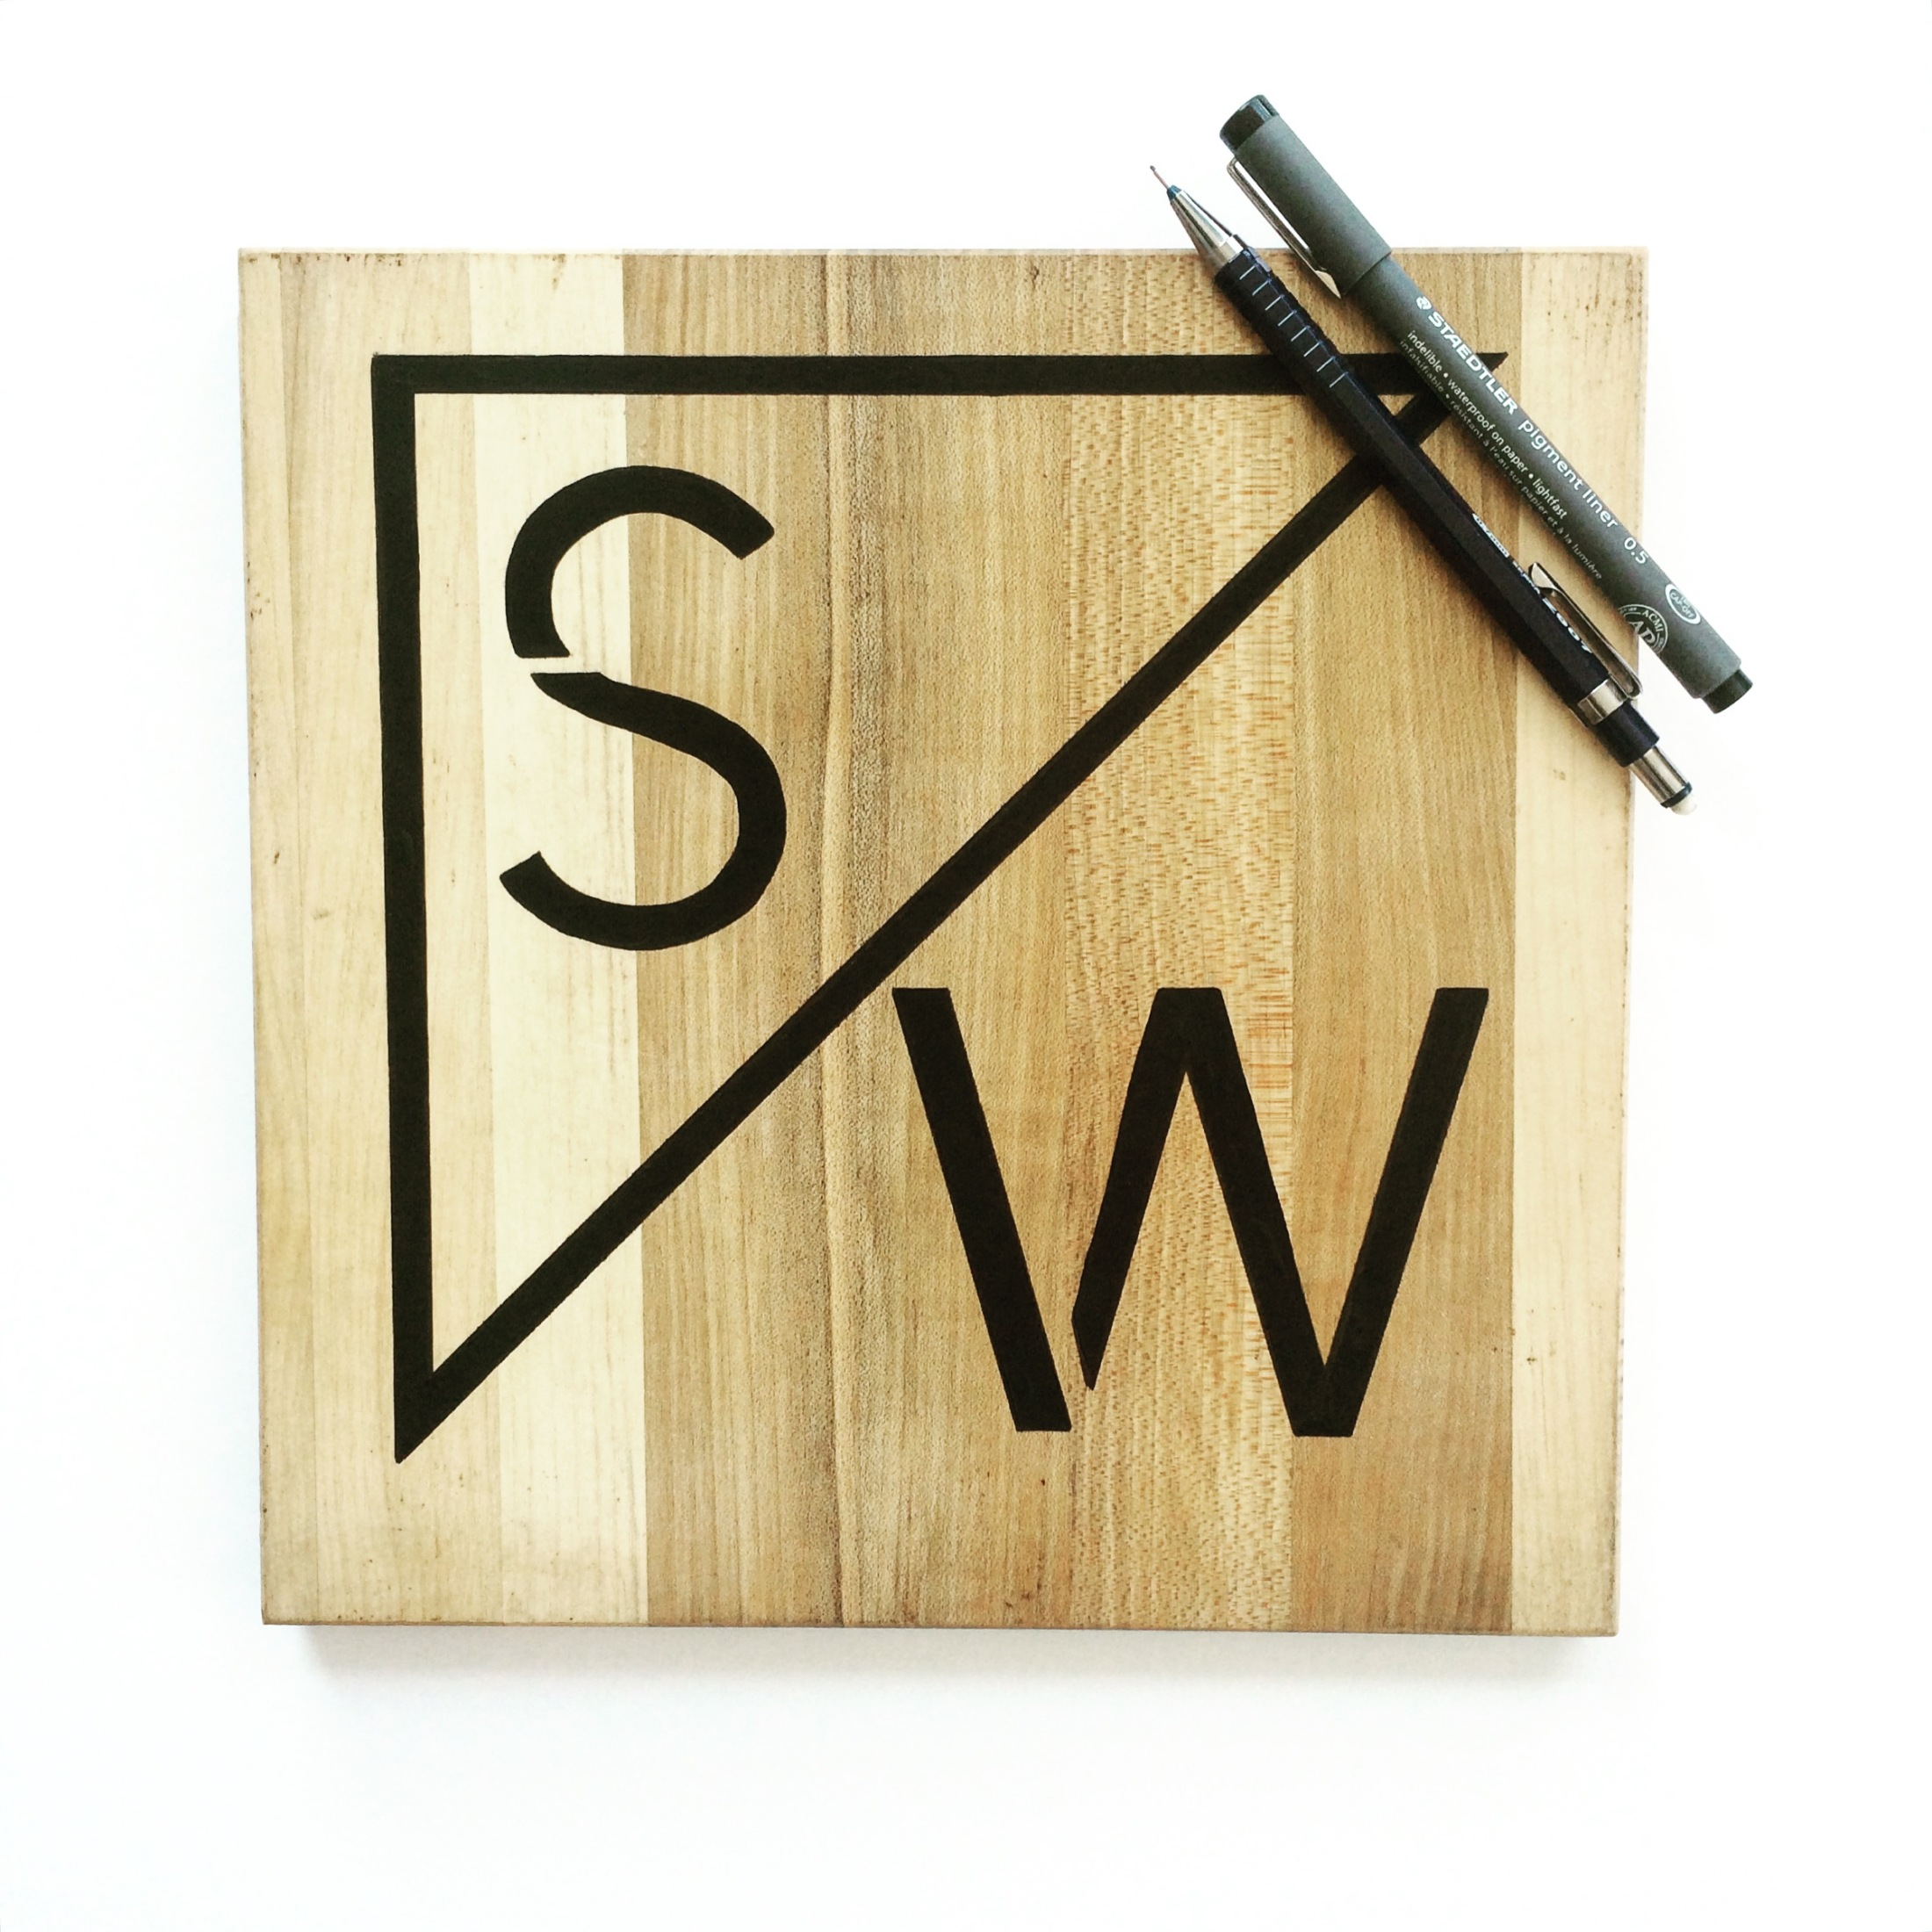 Hand drawn S and W iconography for Stray and Wander